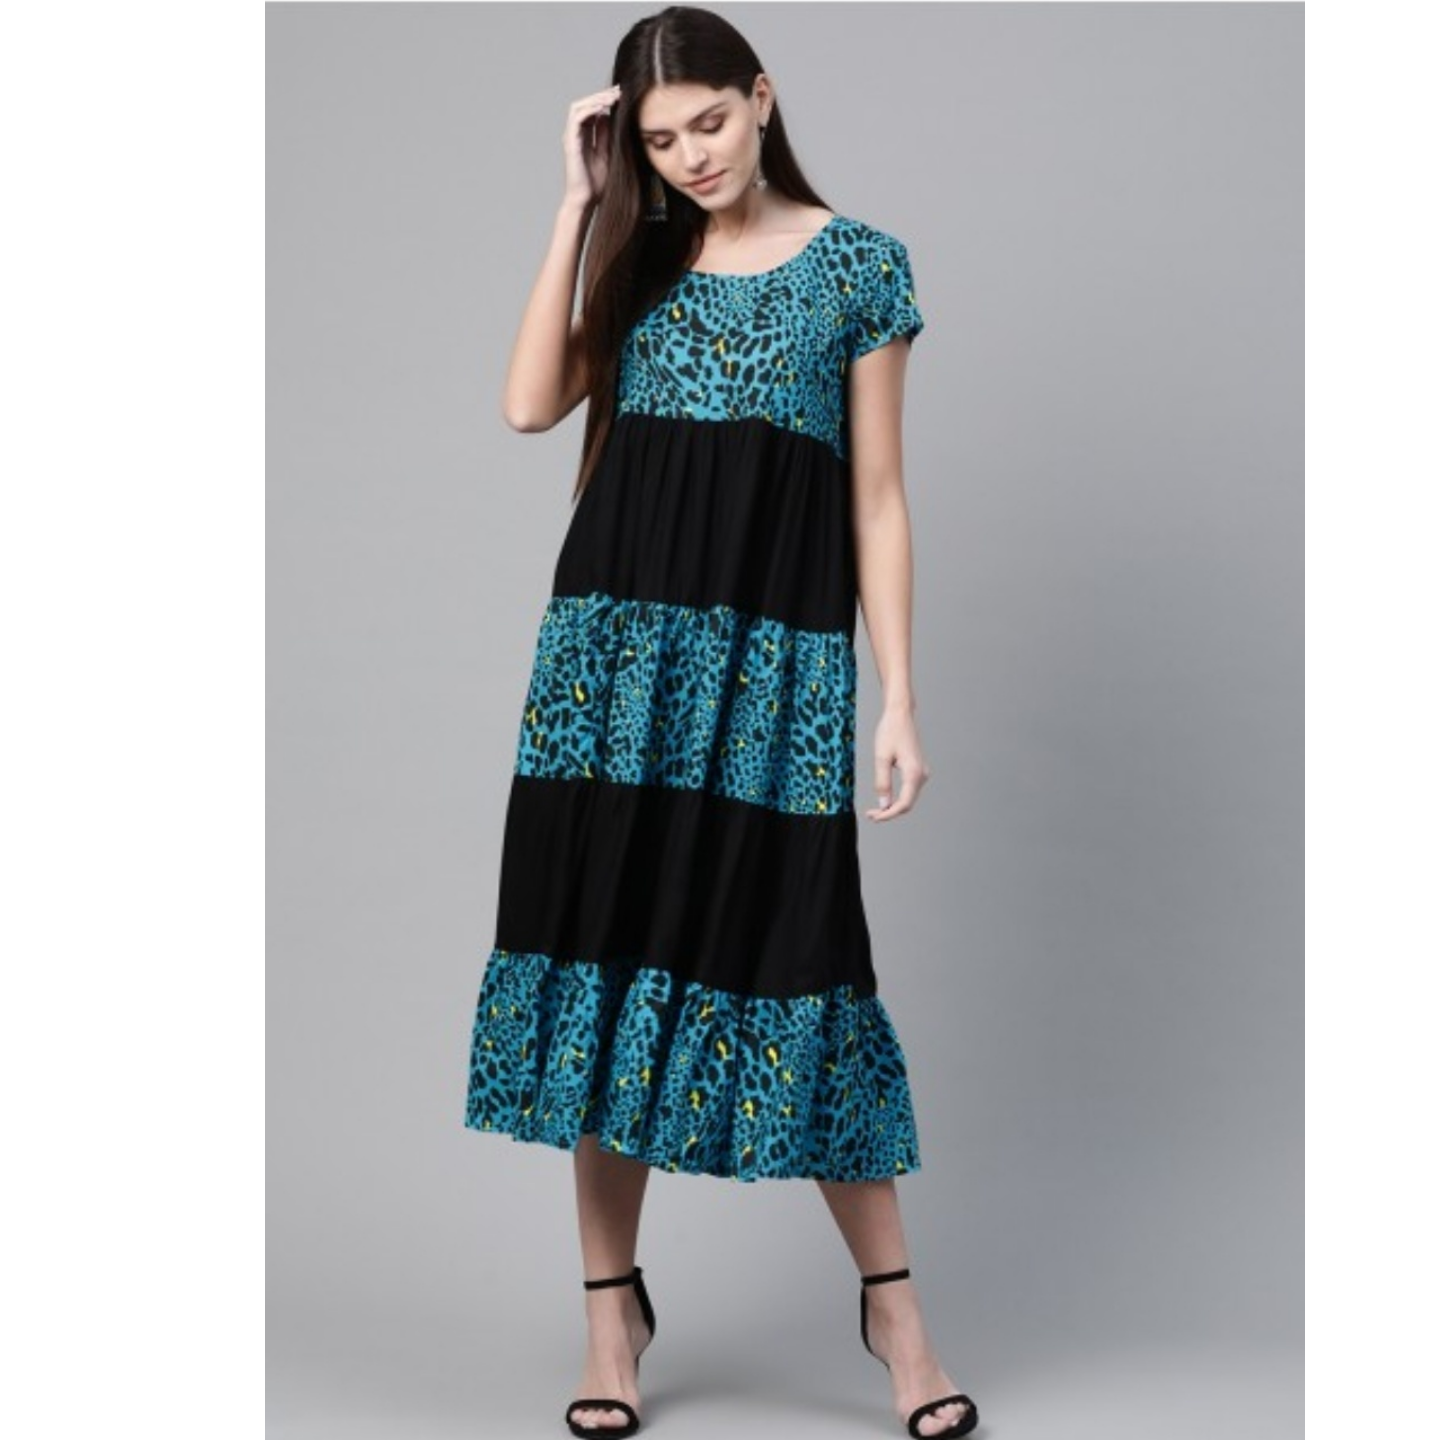 Blue & Black Animal Printed A-Line Tiered Dress